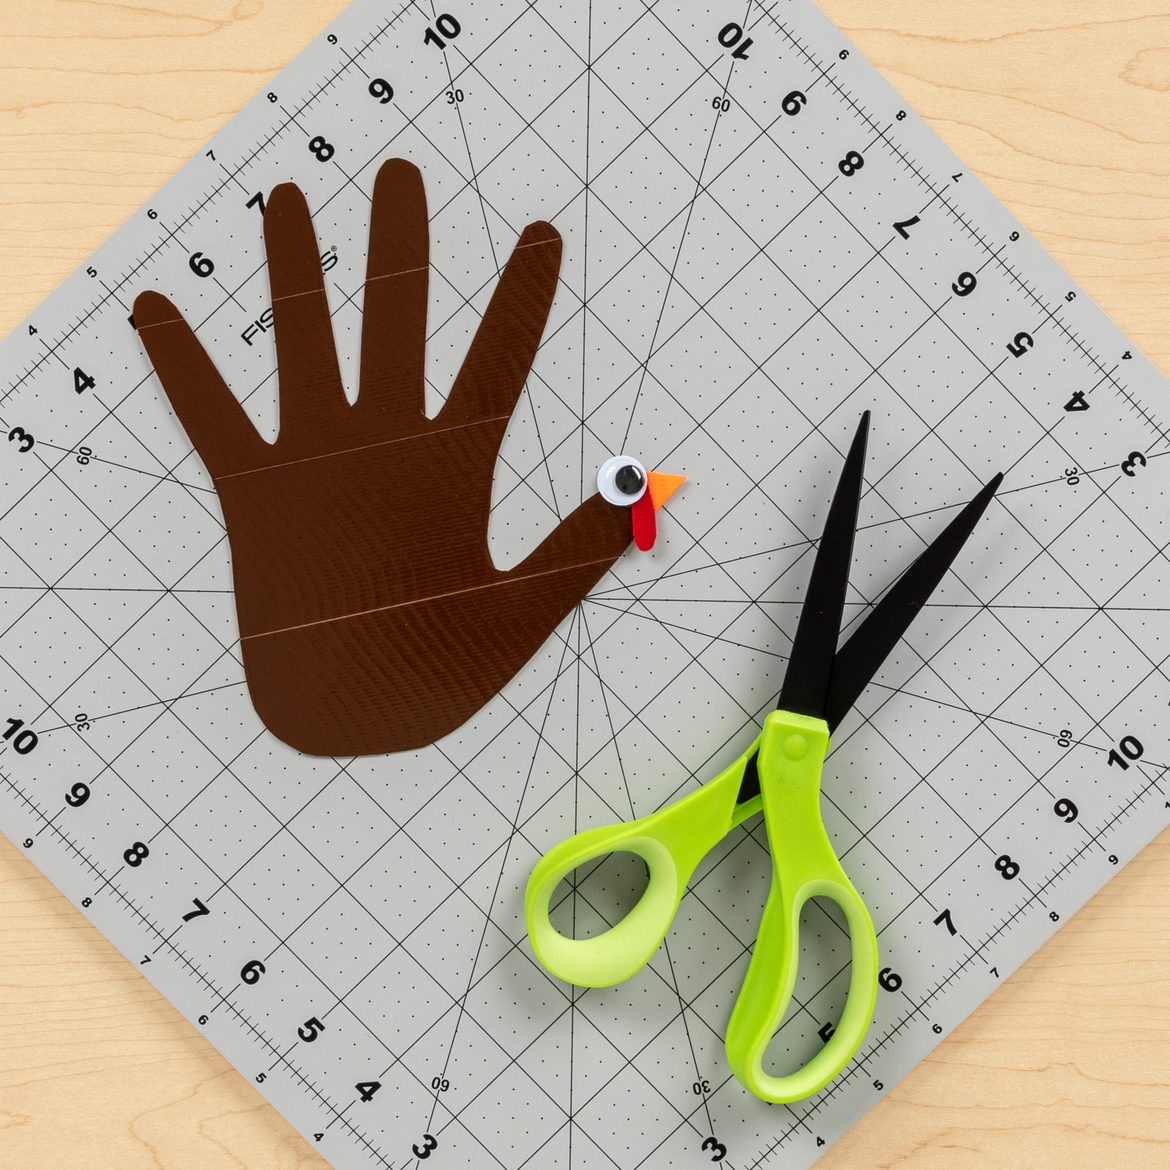 How To Make A Duck Tape Turkey Handprint For Thanksgiving